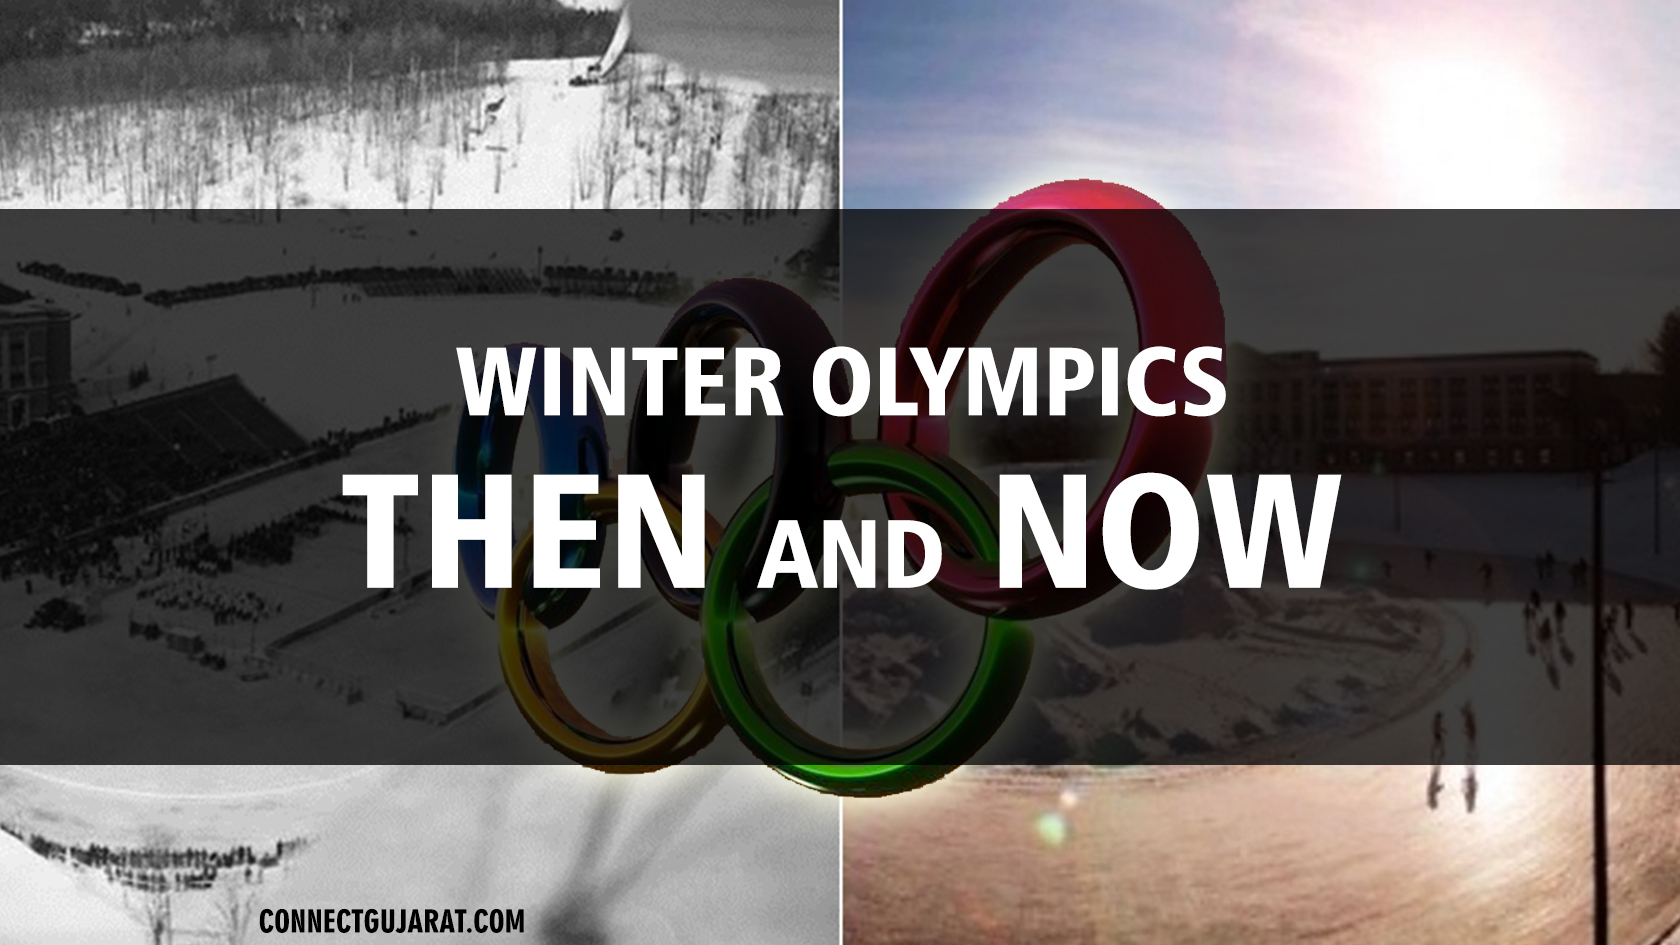 Olympics Then And Now Winter Olympics Then And Now